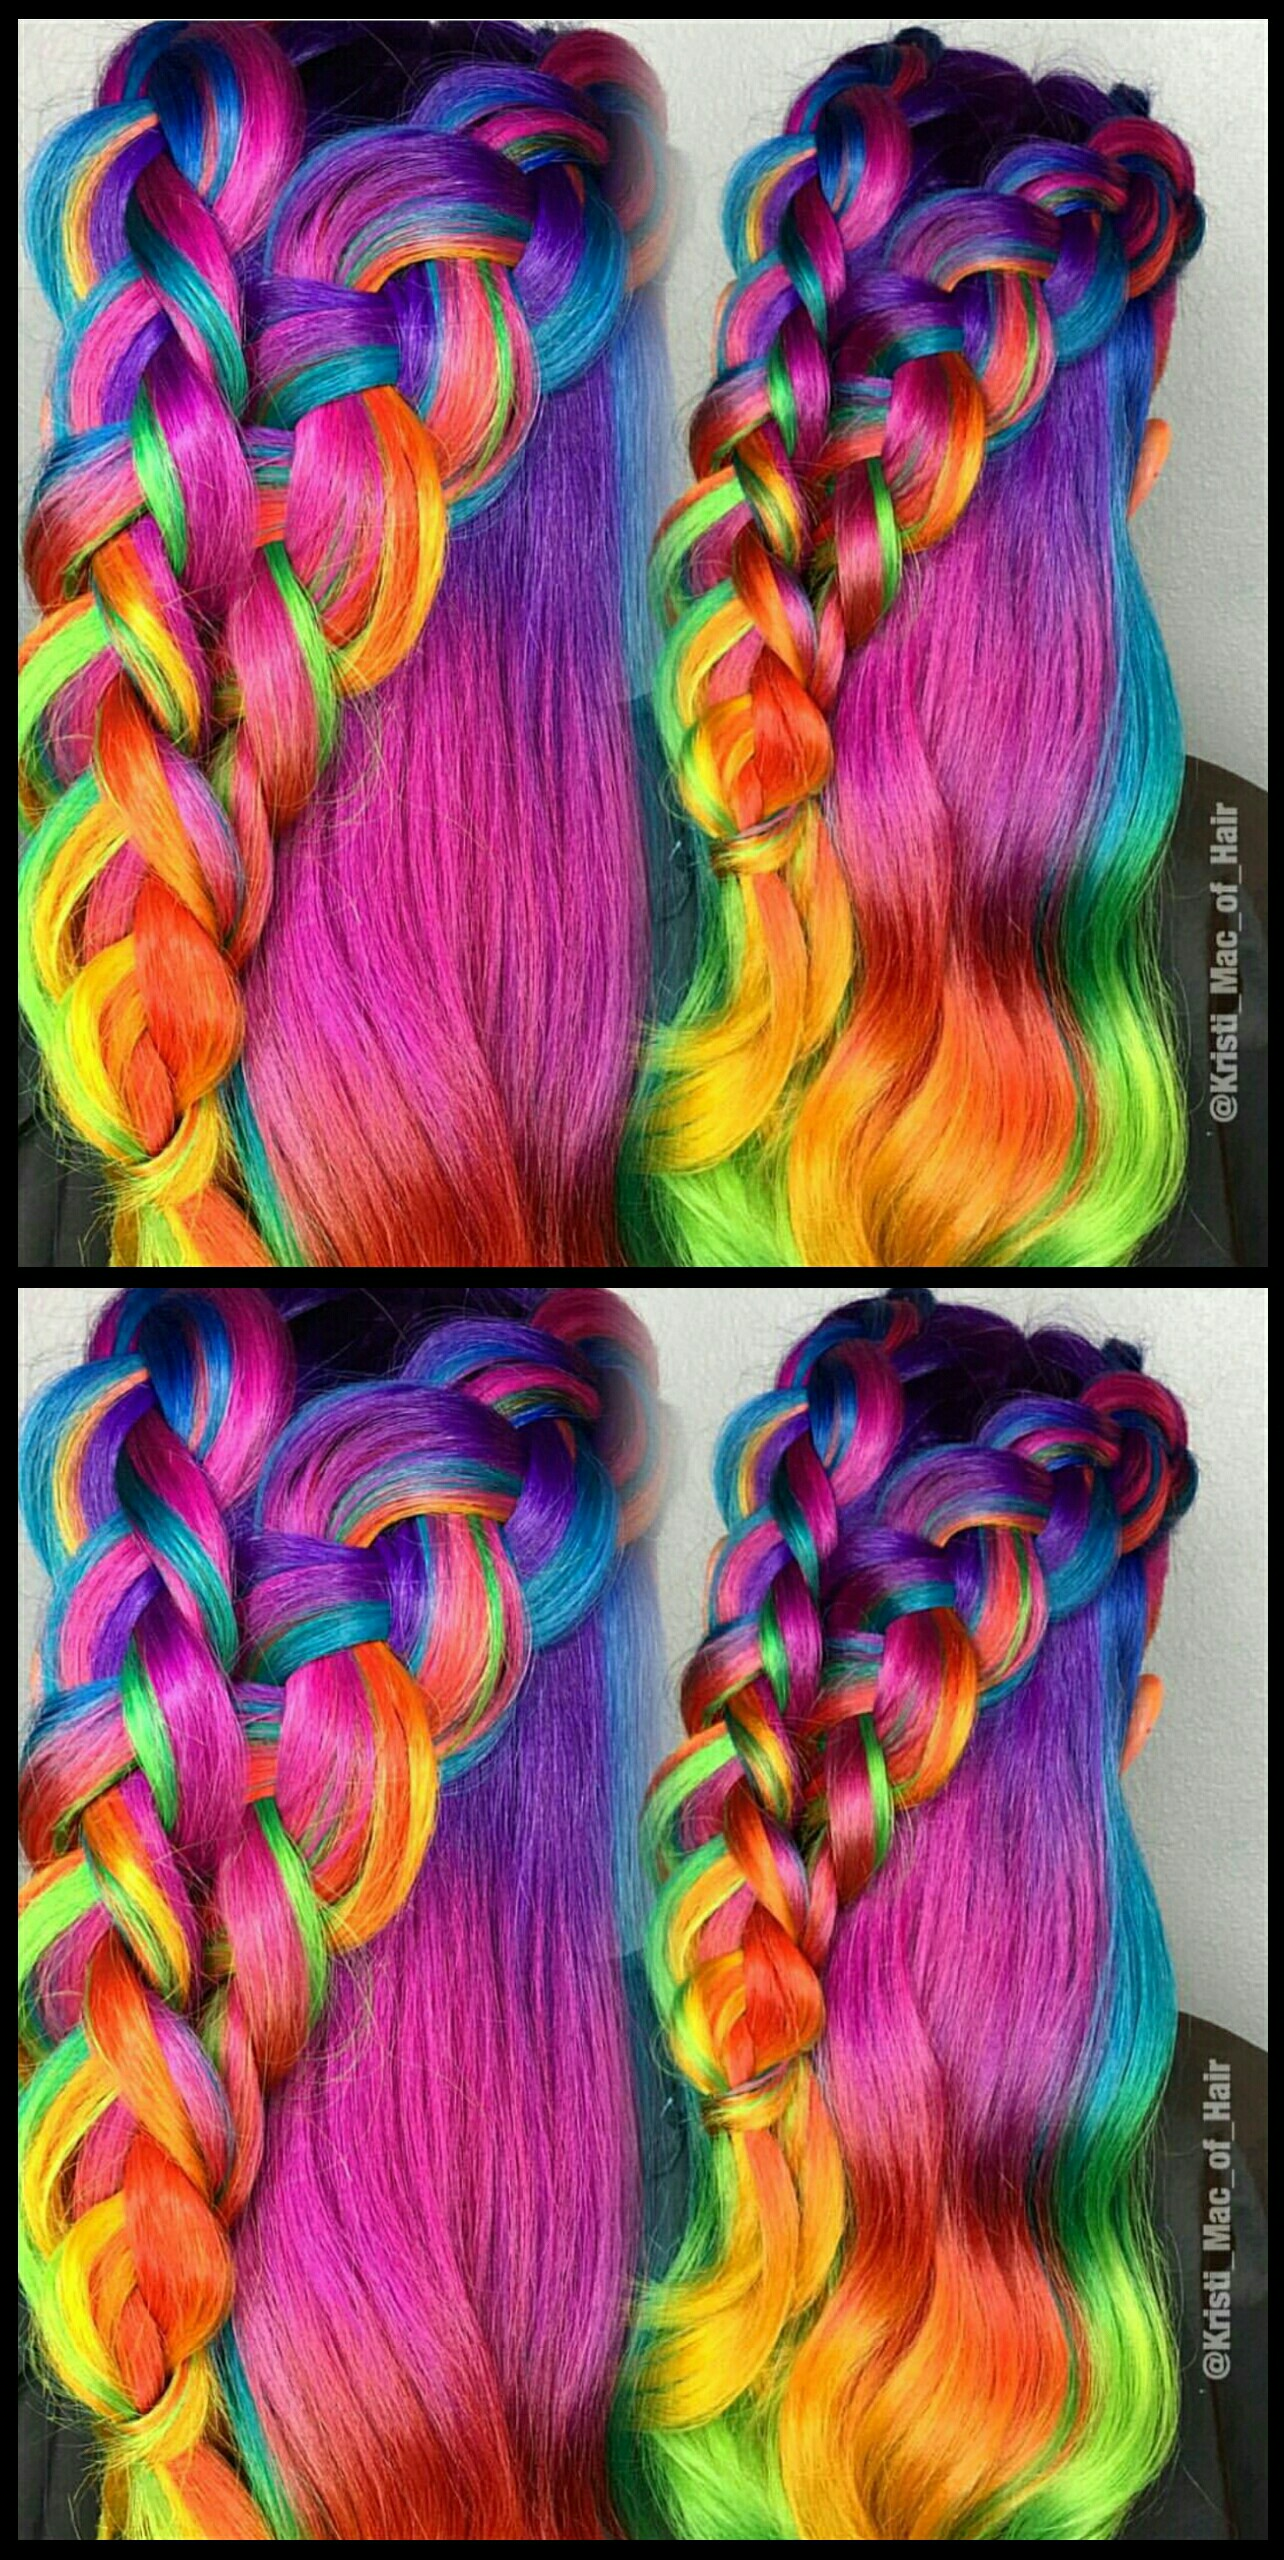 Drawn braid hair colour Color @kristi_mac_of_hair  braided Pink